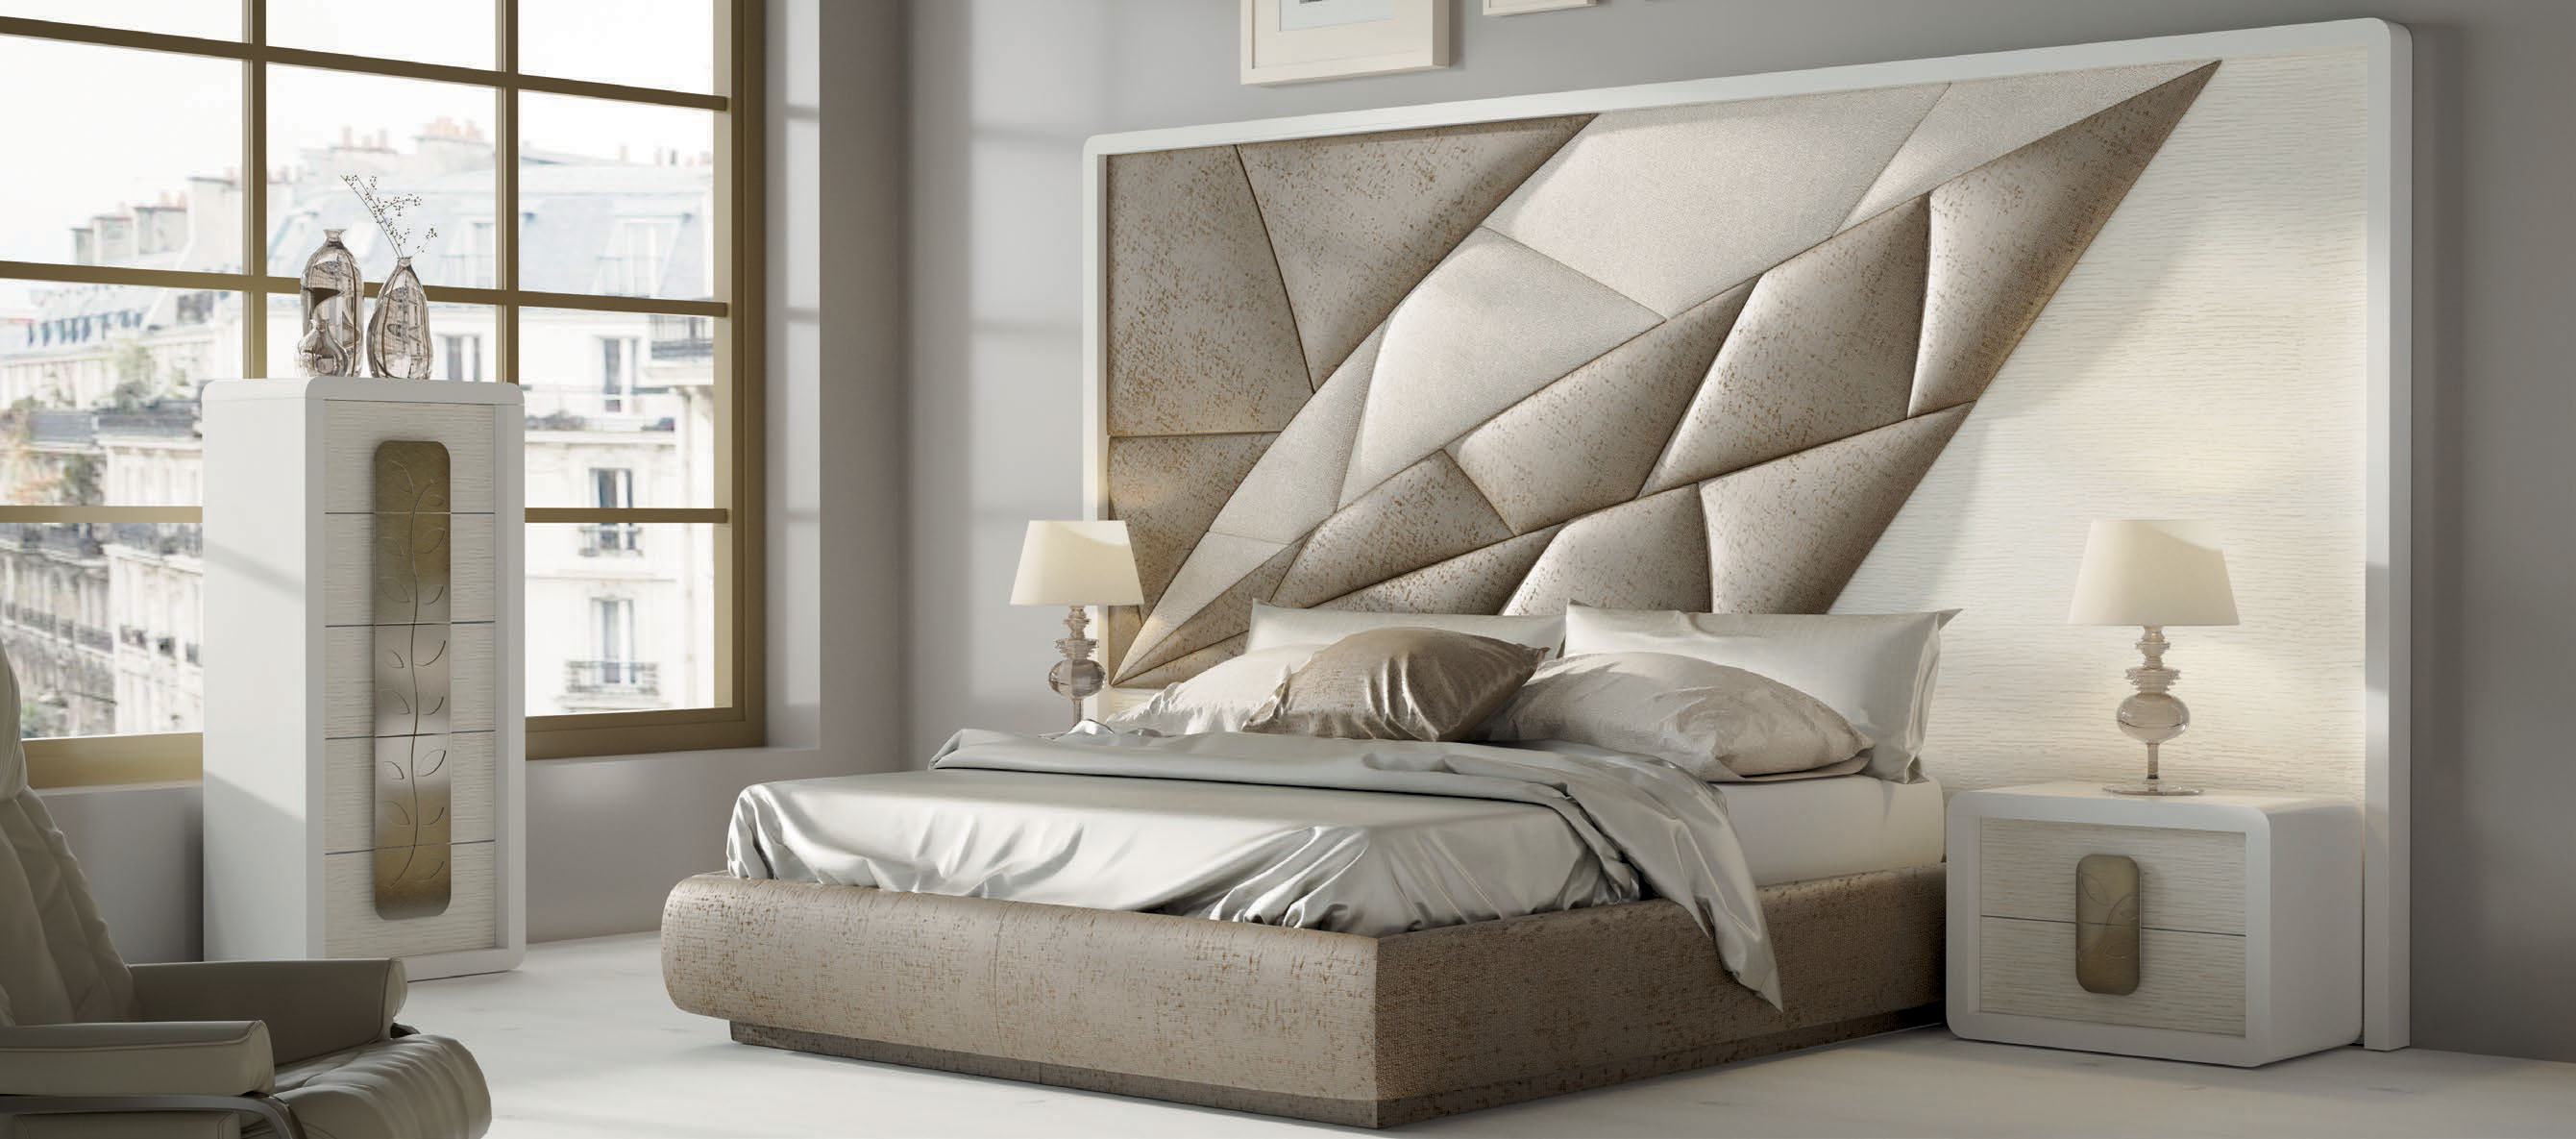 Brands Franco Furniture Bedrooms vol3, Spain DOR 166